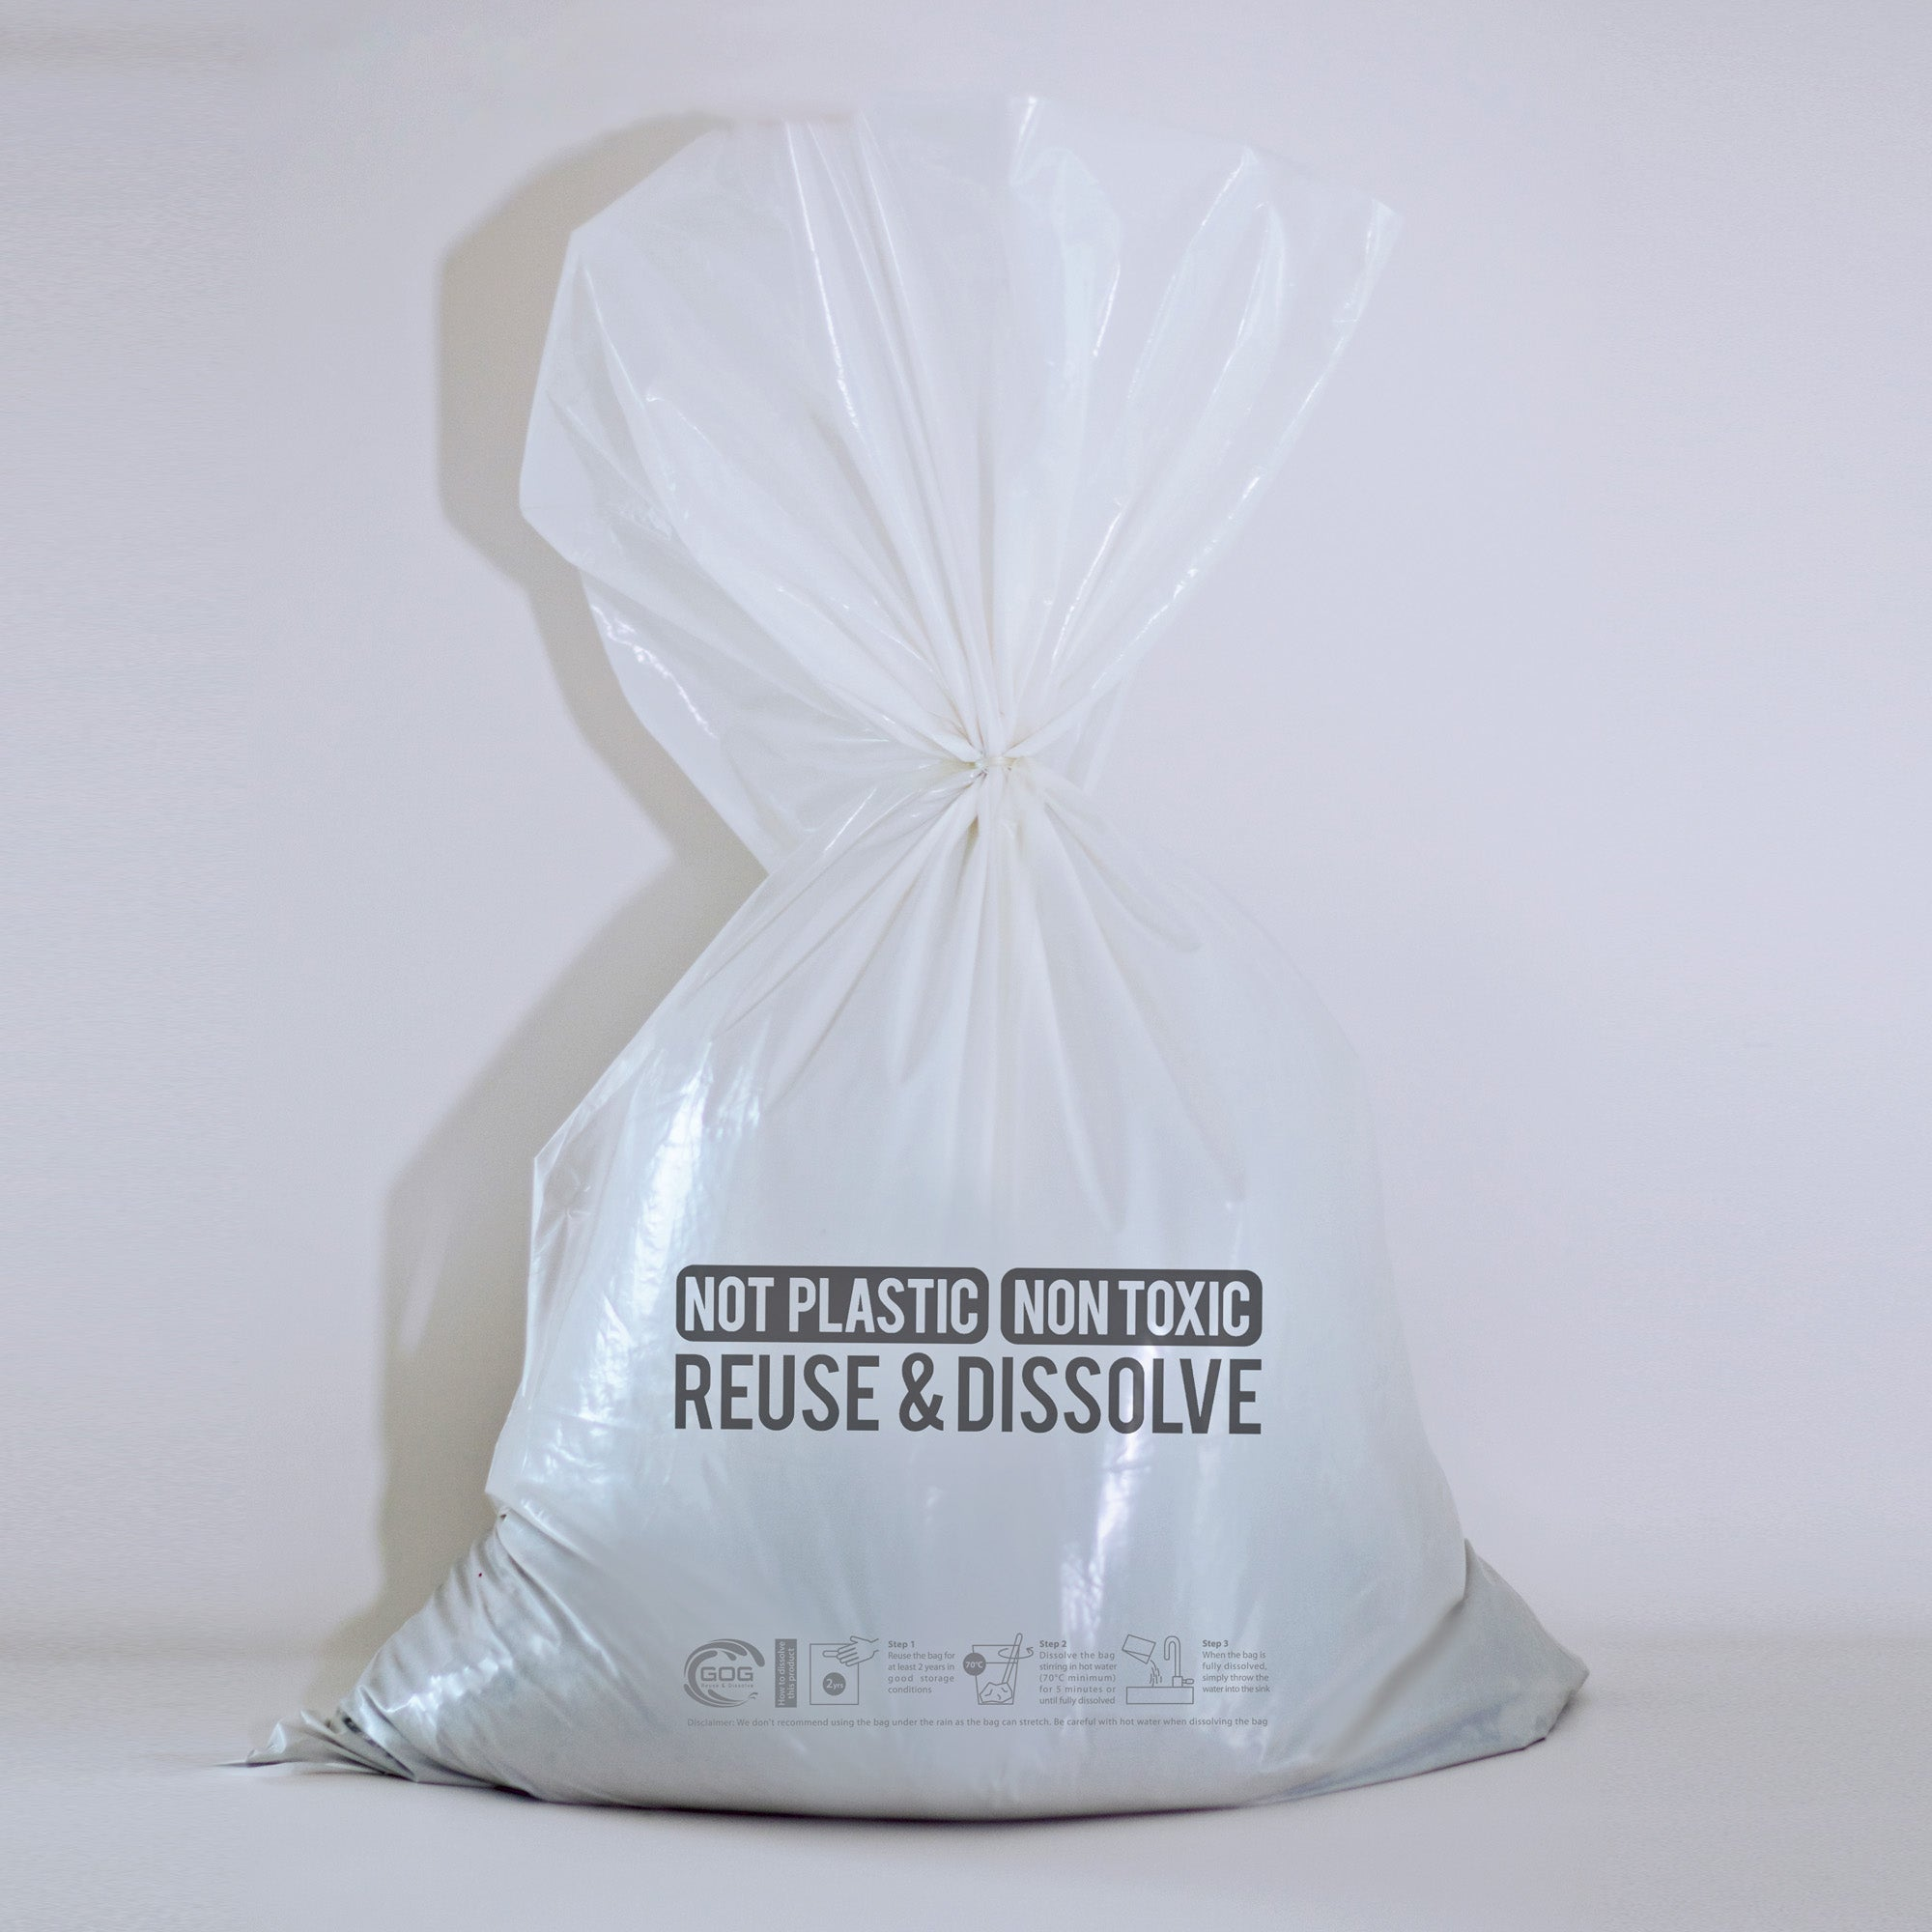 Cement Additive Bags | Water-Soluble & Compostable